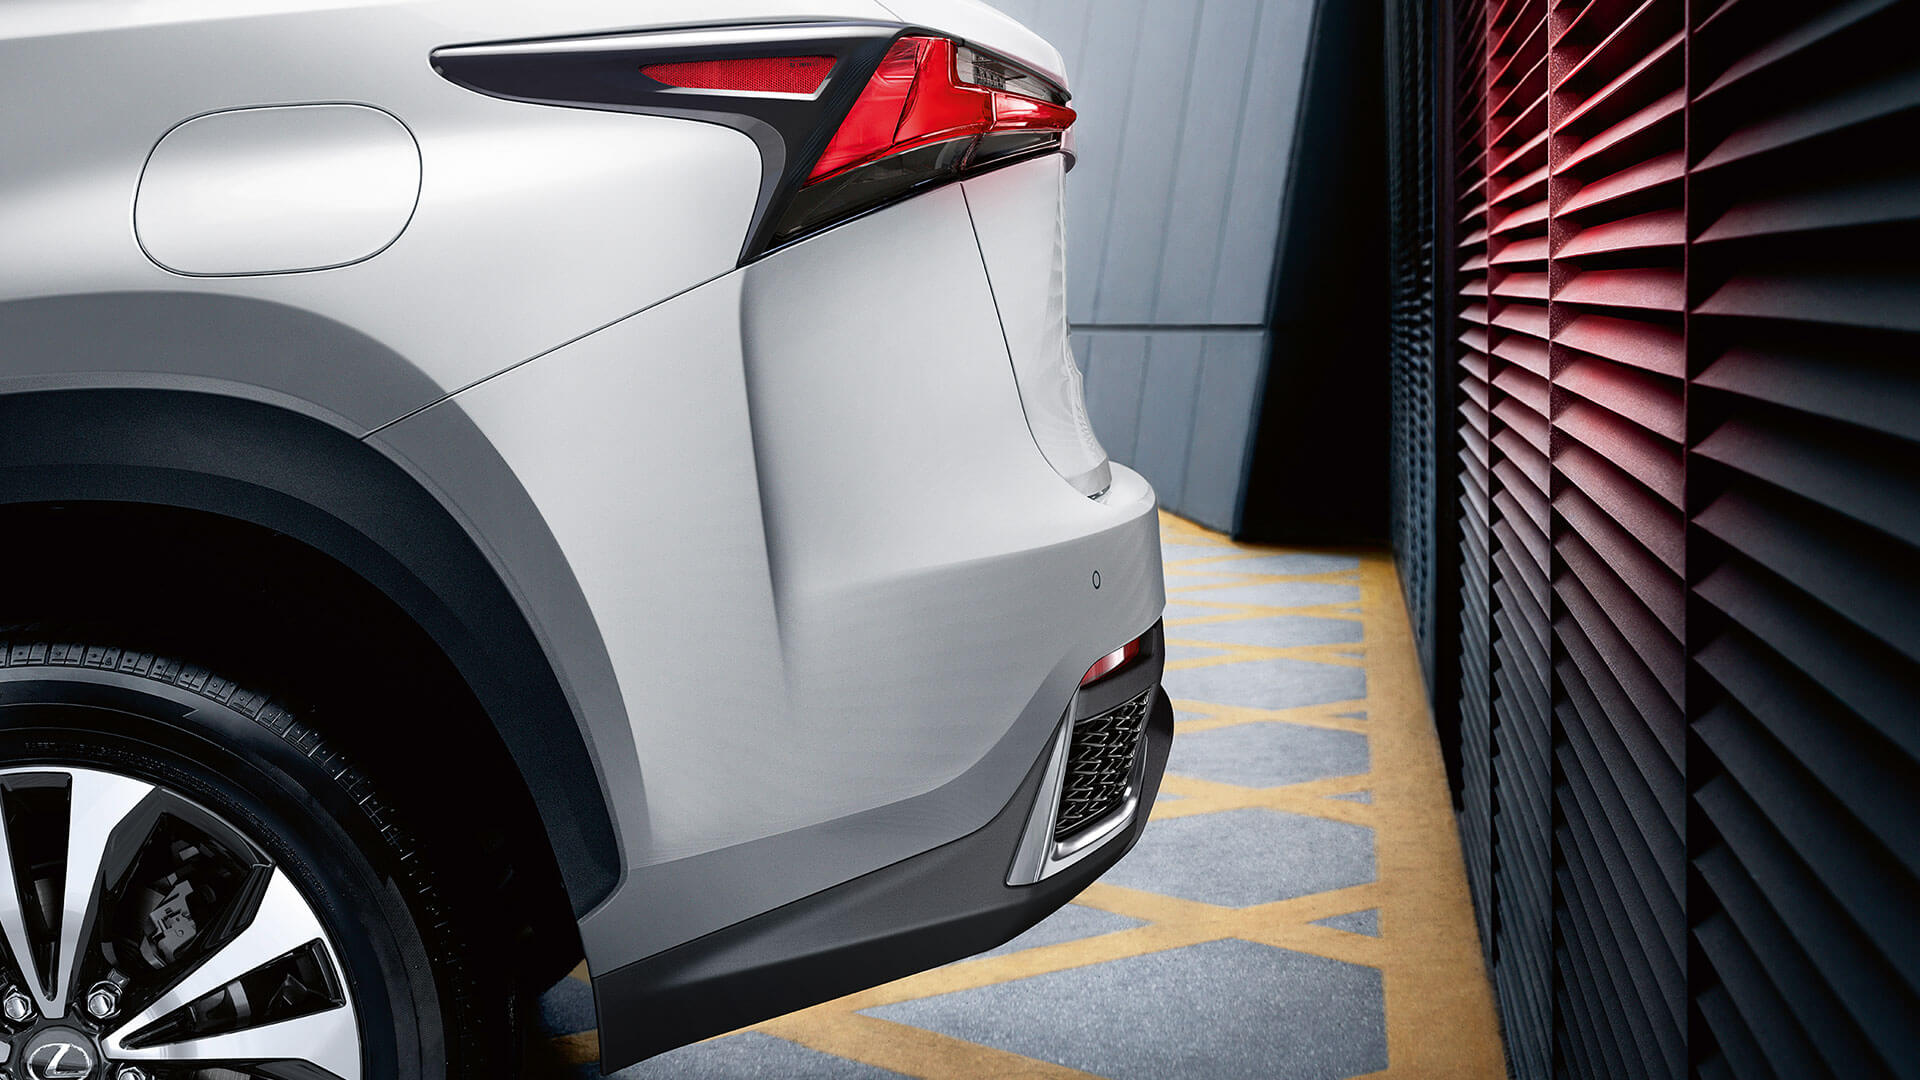 2018 lexus nx my18 features parking assist monitor